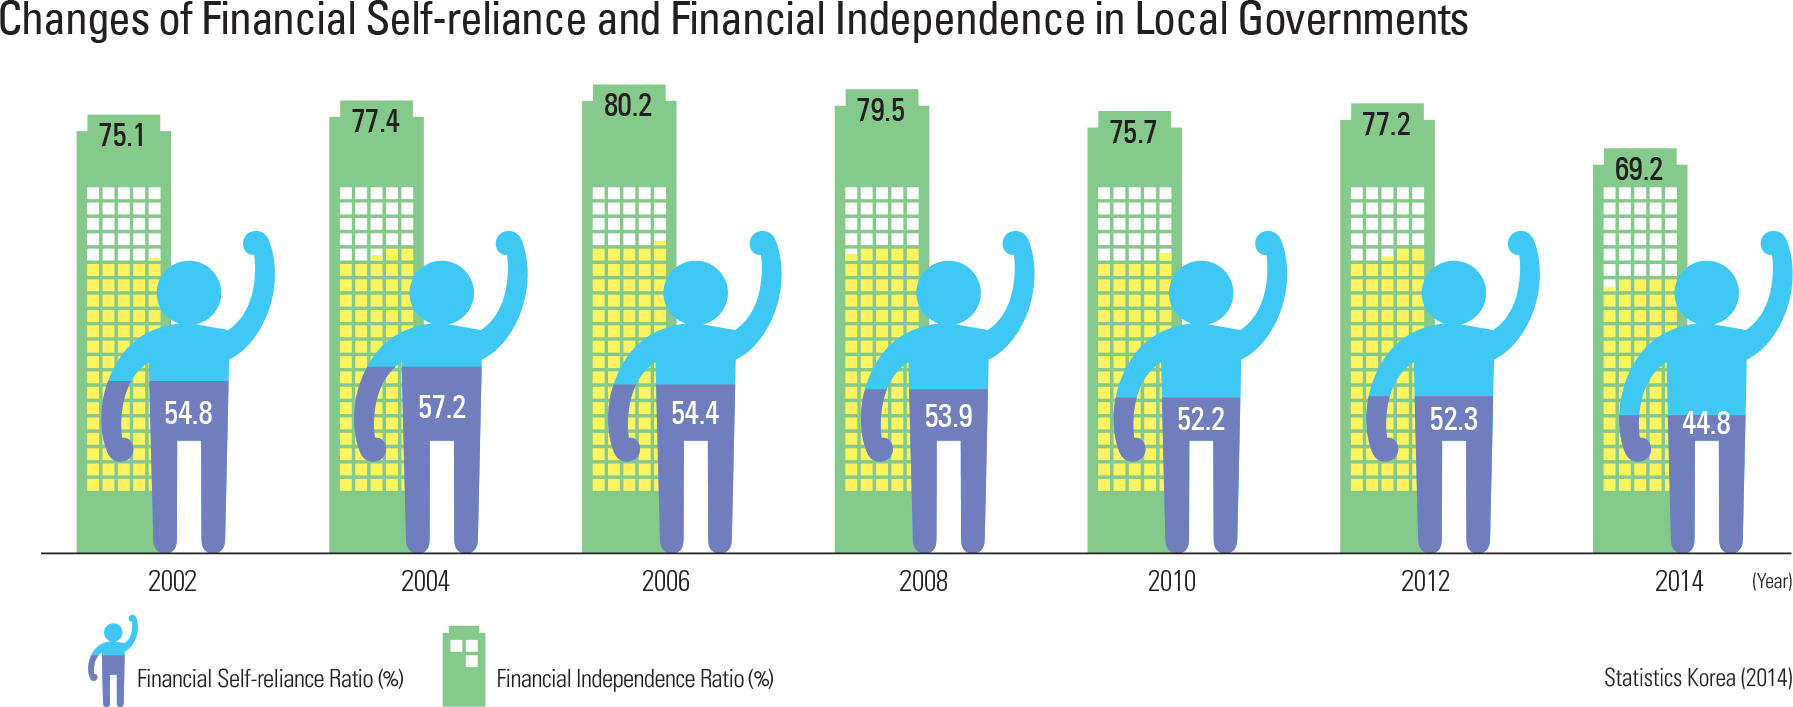 Changes of Financial Self-reliance and Financial Independence in Local Governments